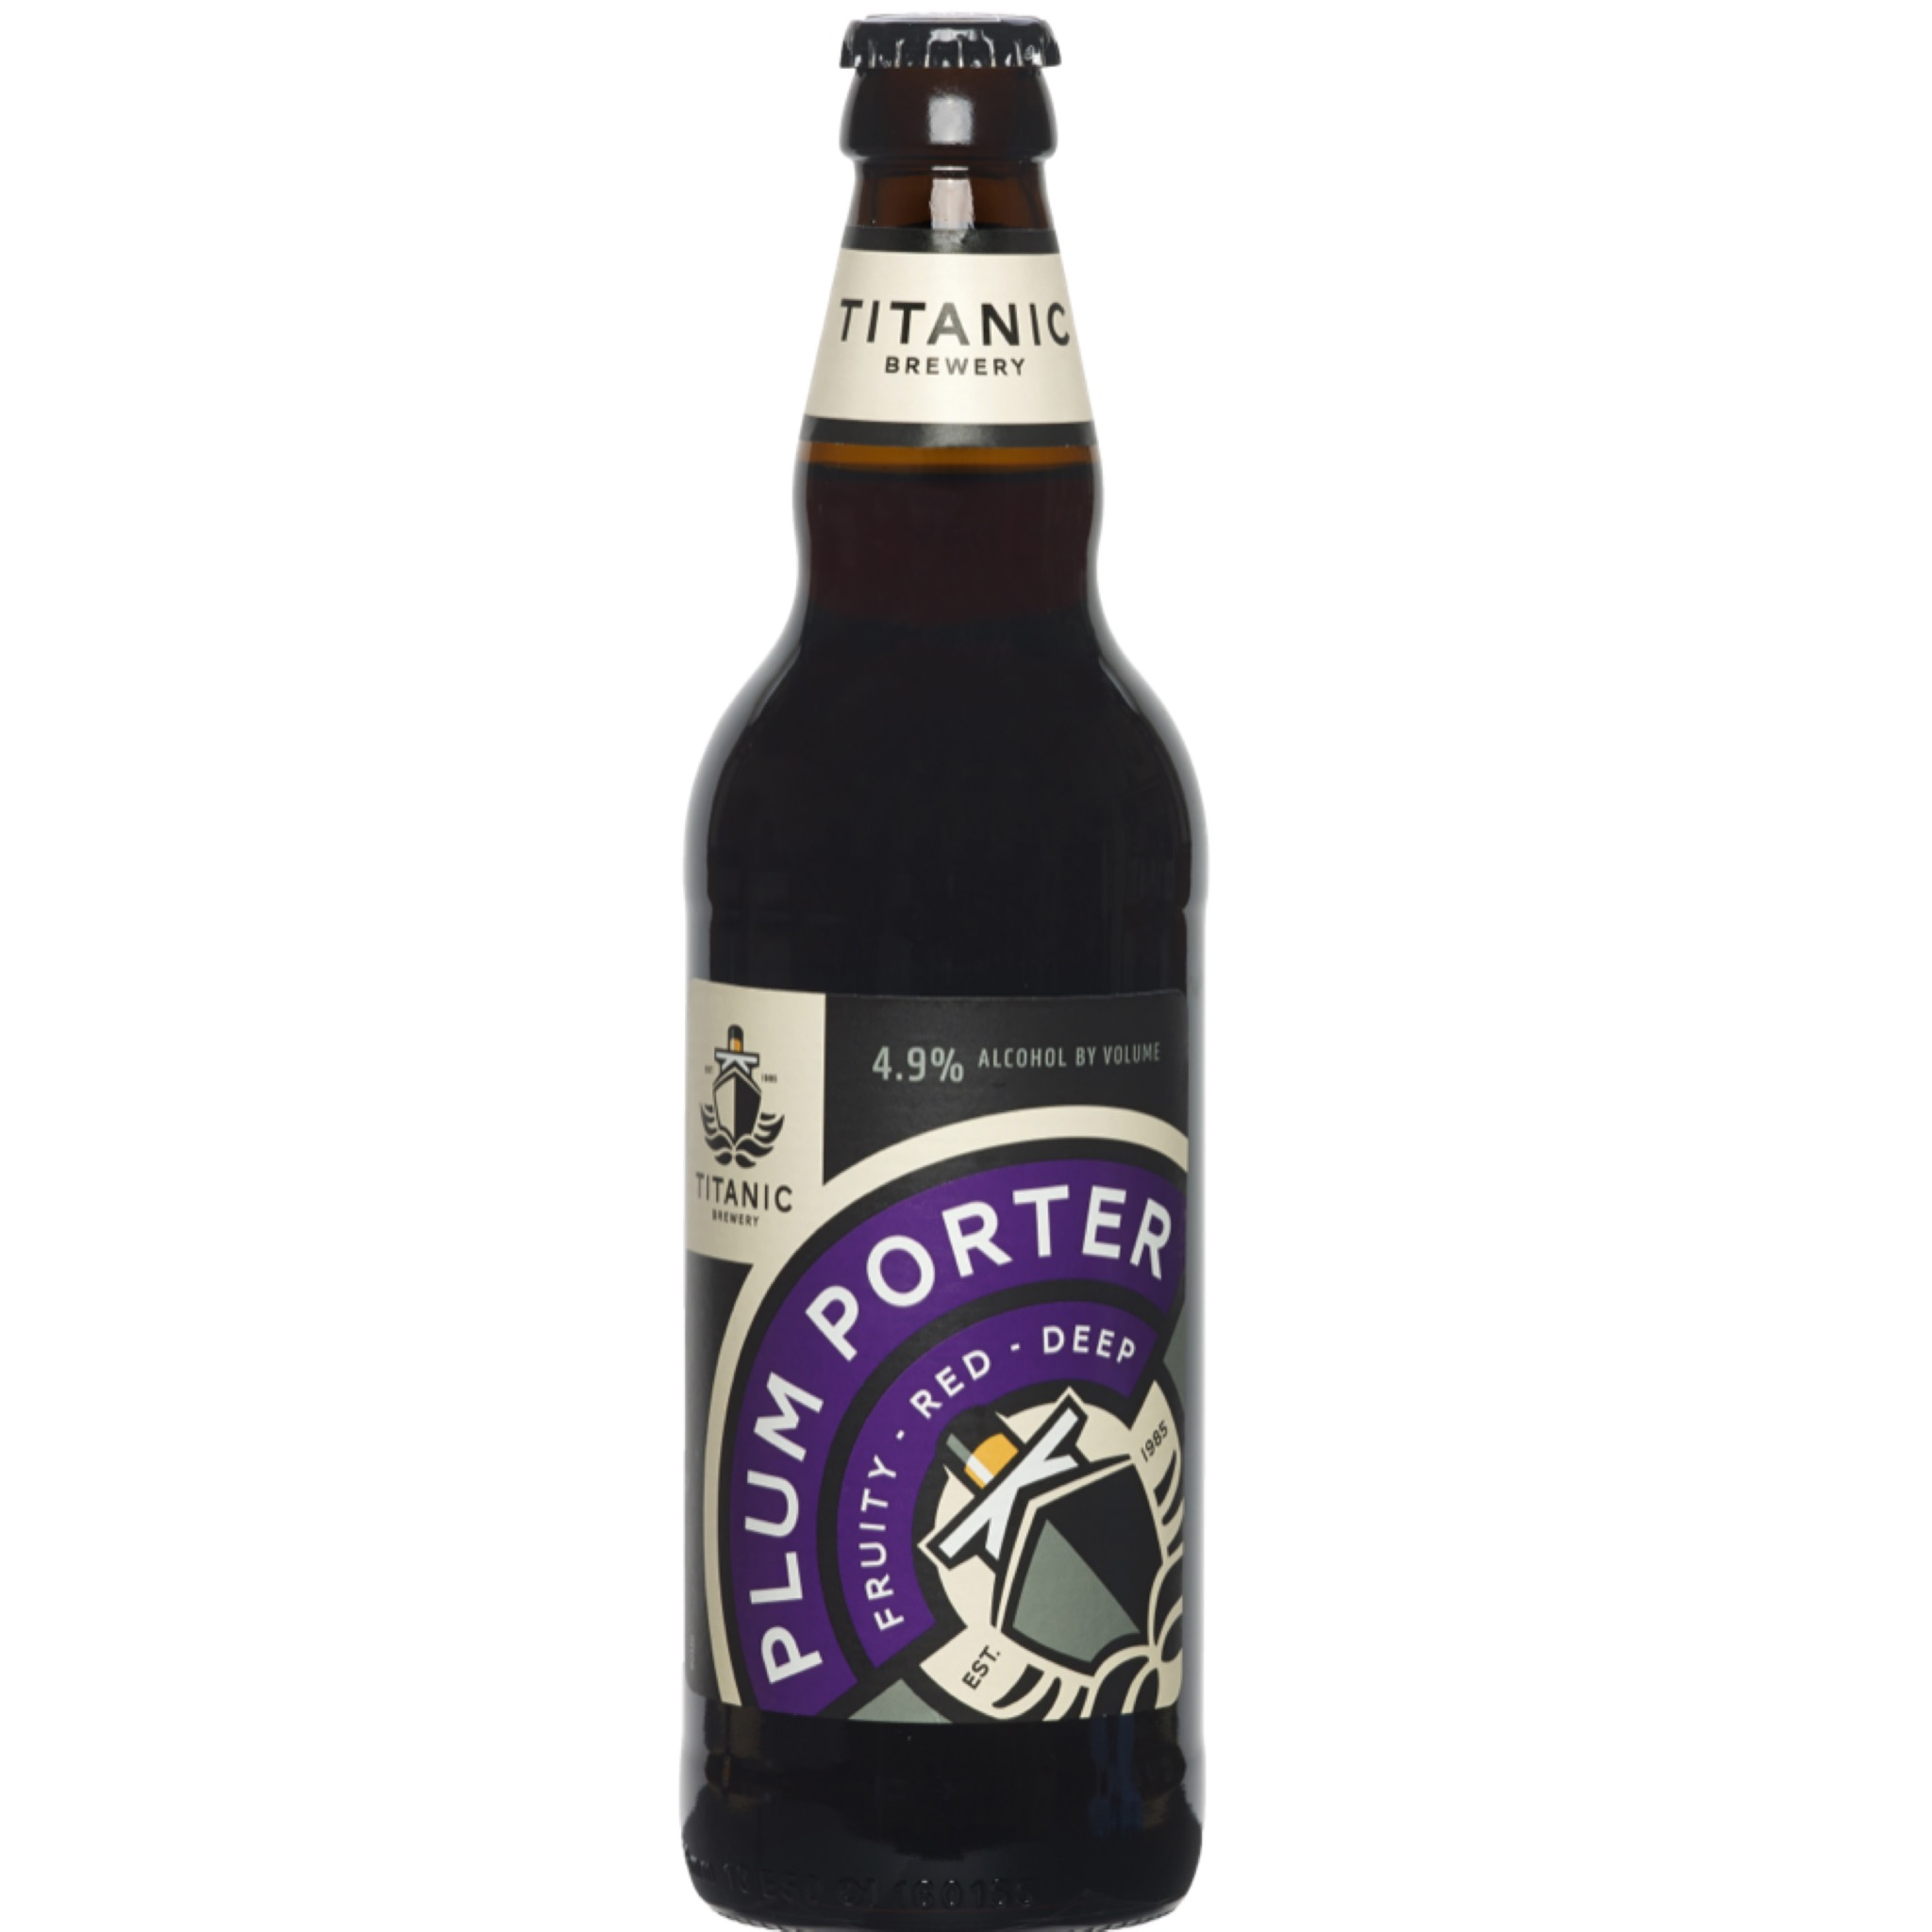 Titanic Plum Porter 4.9% 500ml